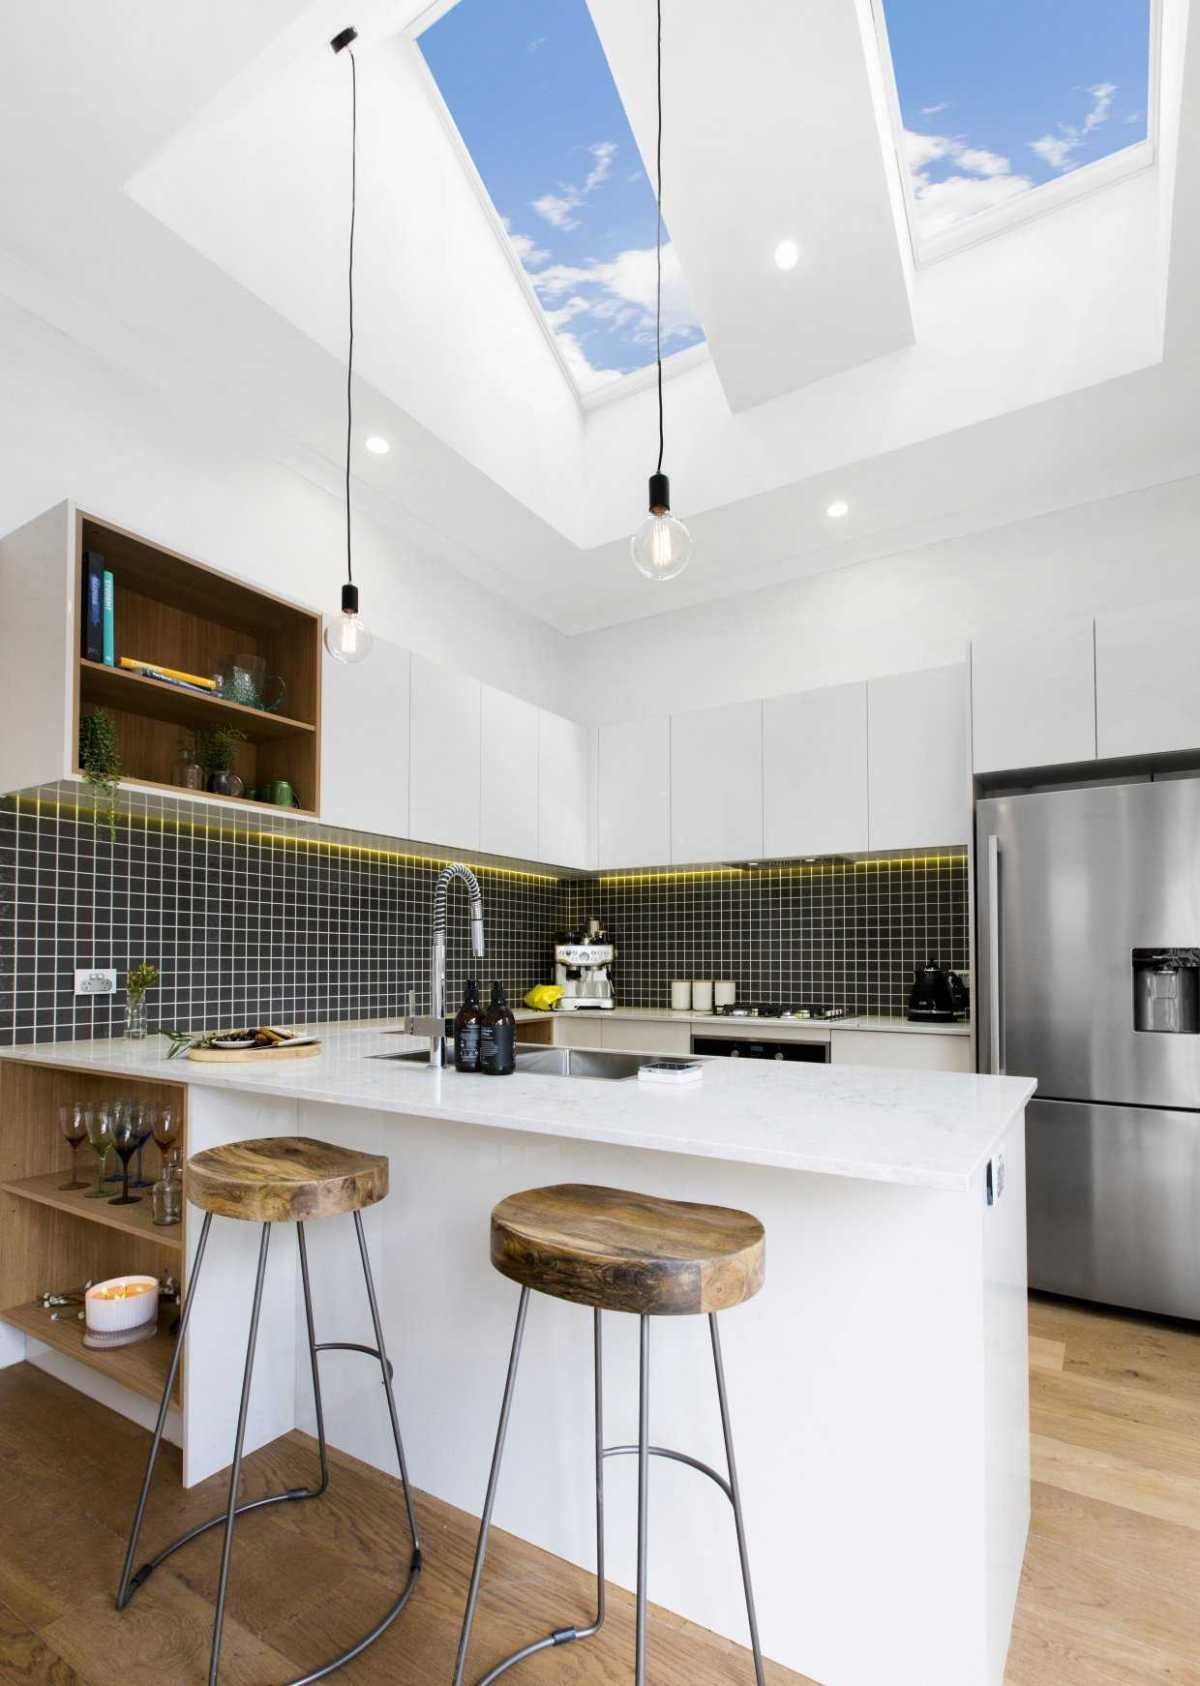 Skylight Ideas To Make Your Space Brighter Fresh Kitchen Gallery Skylight Kitchen Gallery Home Decor Kitchen